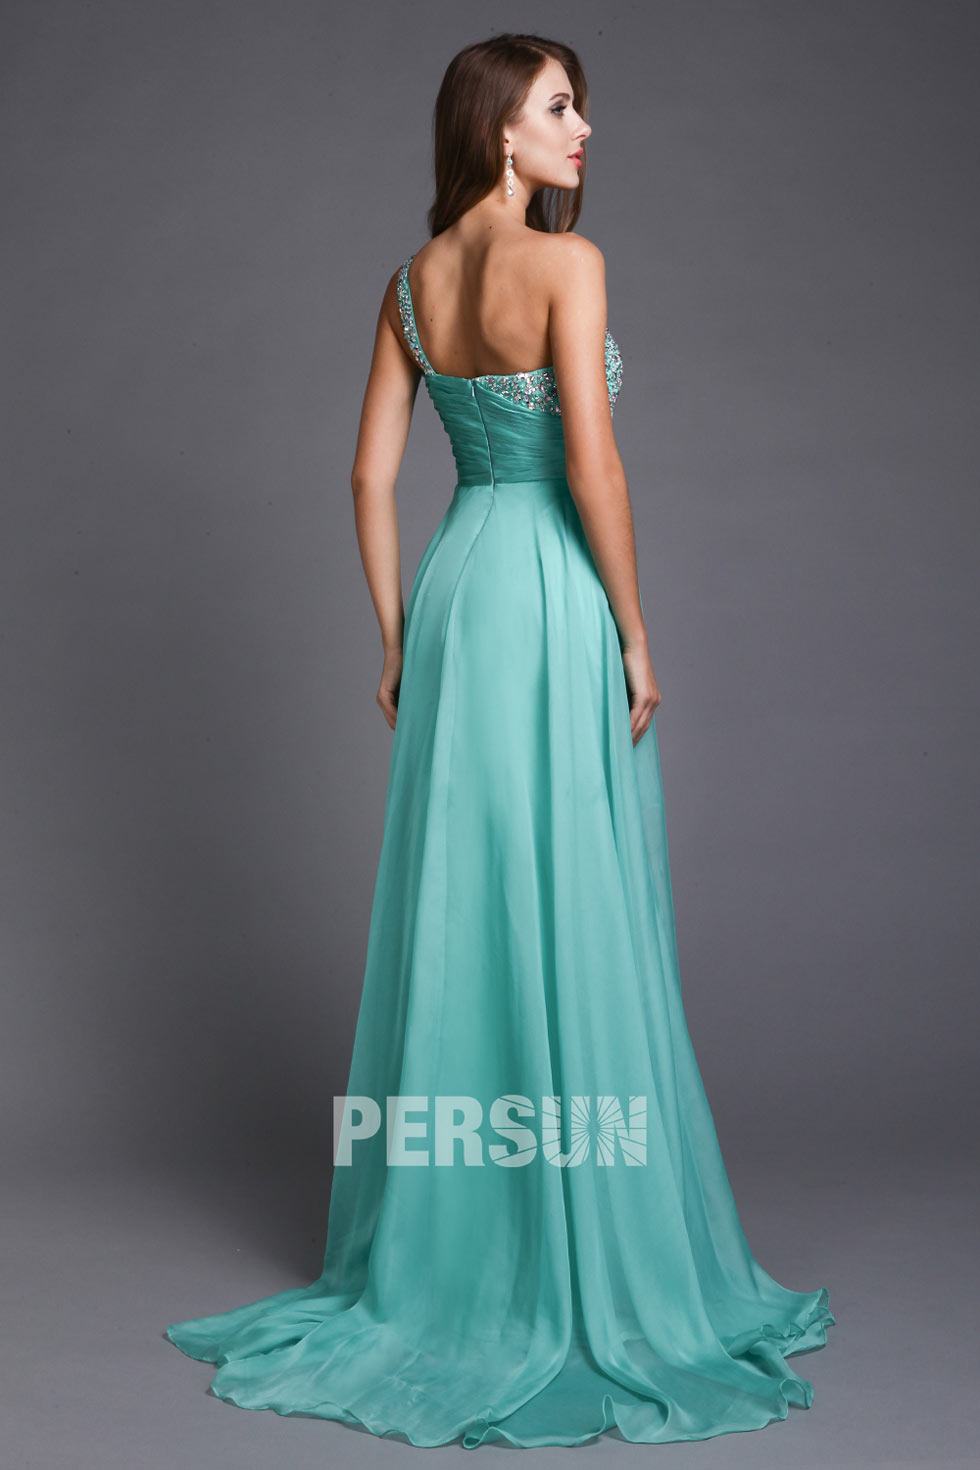 Tenue cocktail longue pmenthemariage empire en mousselineRobe asymétrique verte à paillette en tencel ornée de strass